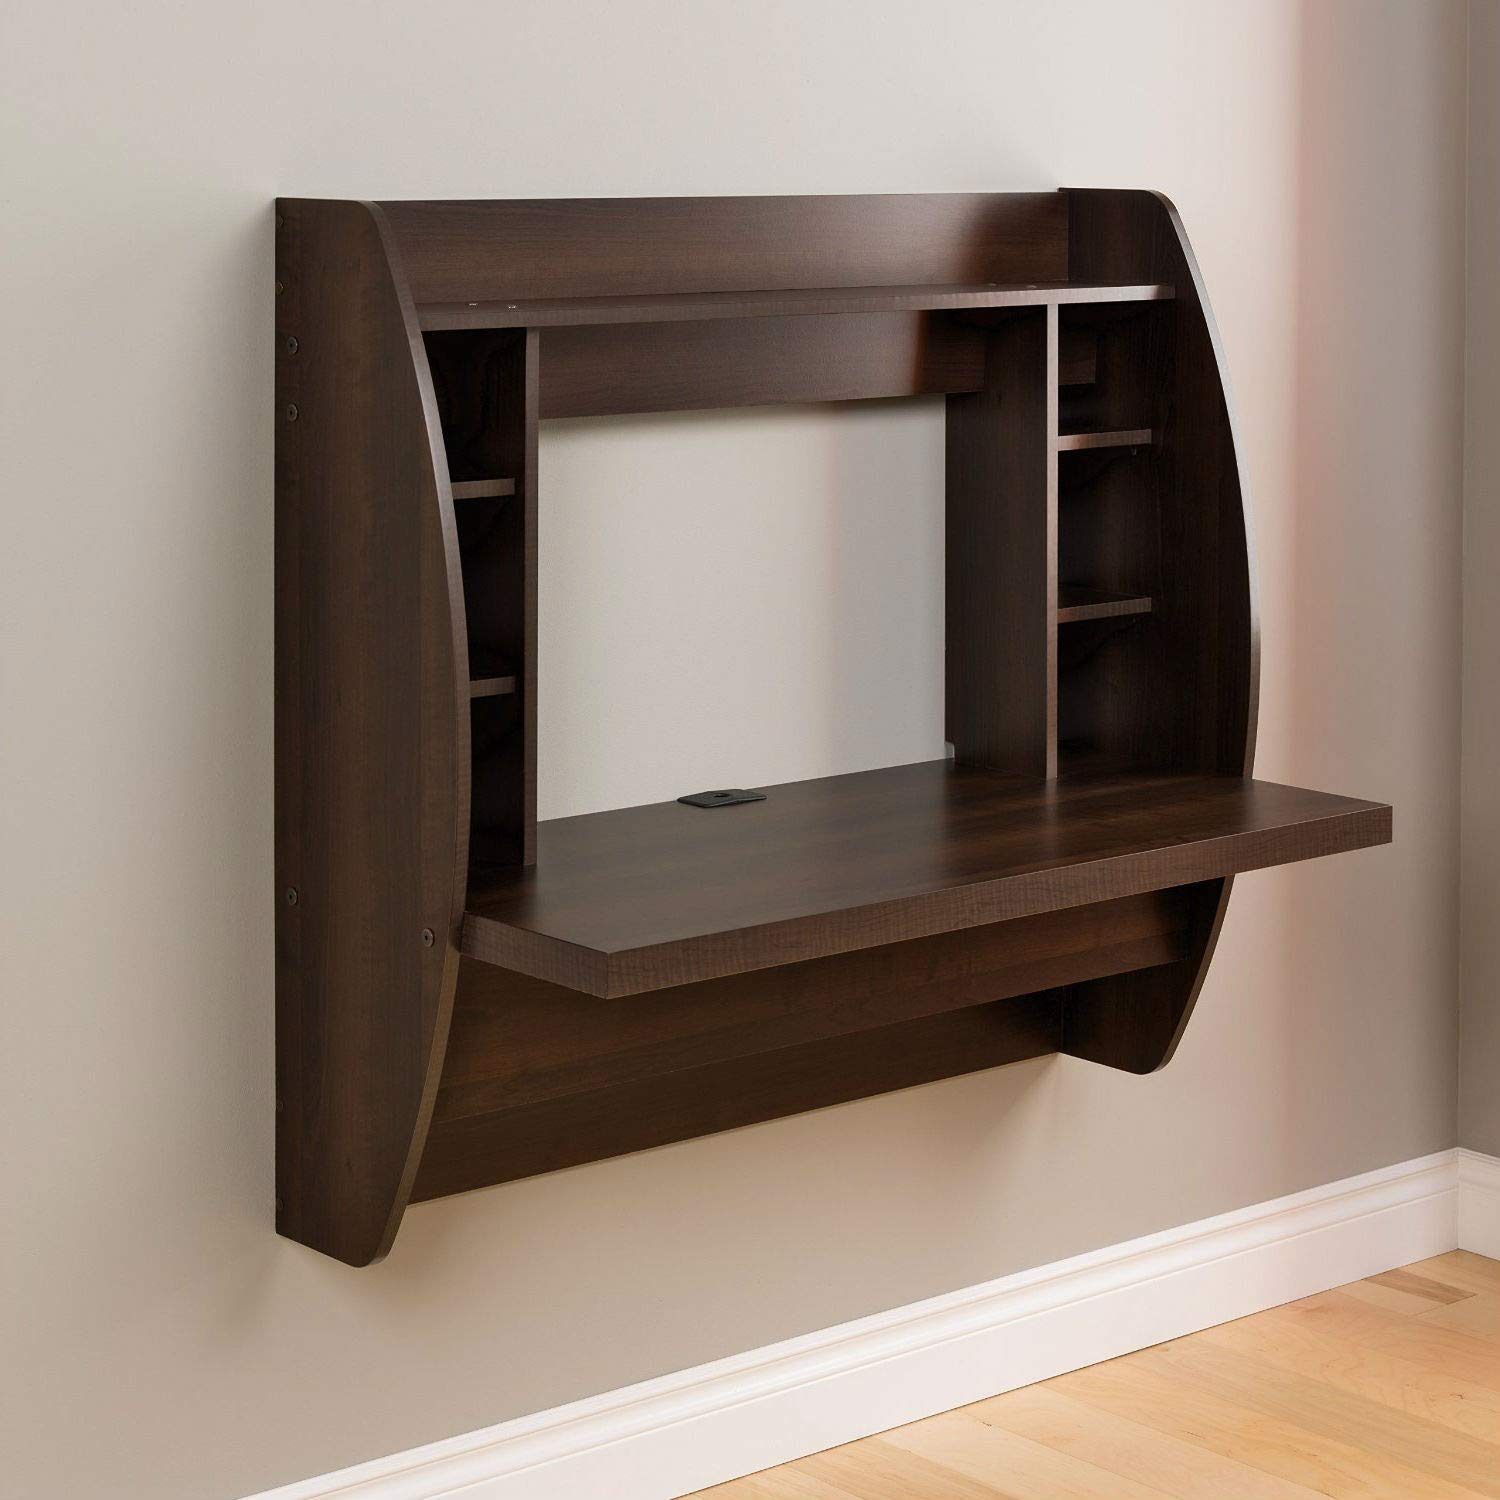 Trustpurchase Wall Mount Space Saving Modern Laptop Computer Desk in Espresso, Innovative and Stylish Wall Mounted Desk, Perfectly Suited for Any Home Office, Den, Living Room, Kitchen or Entryway